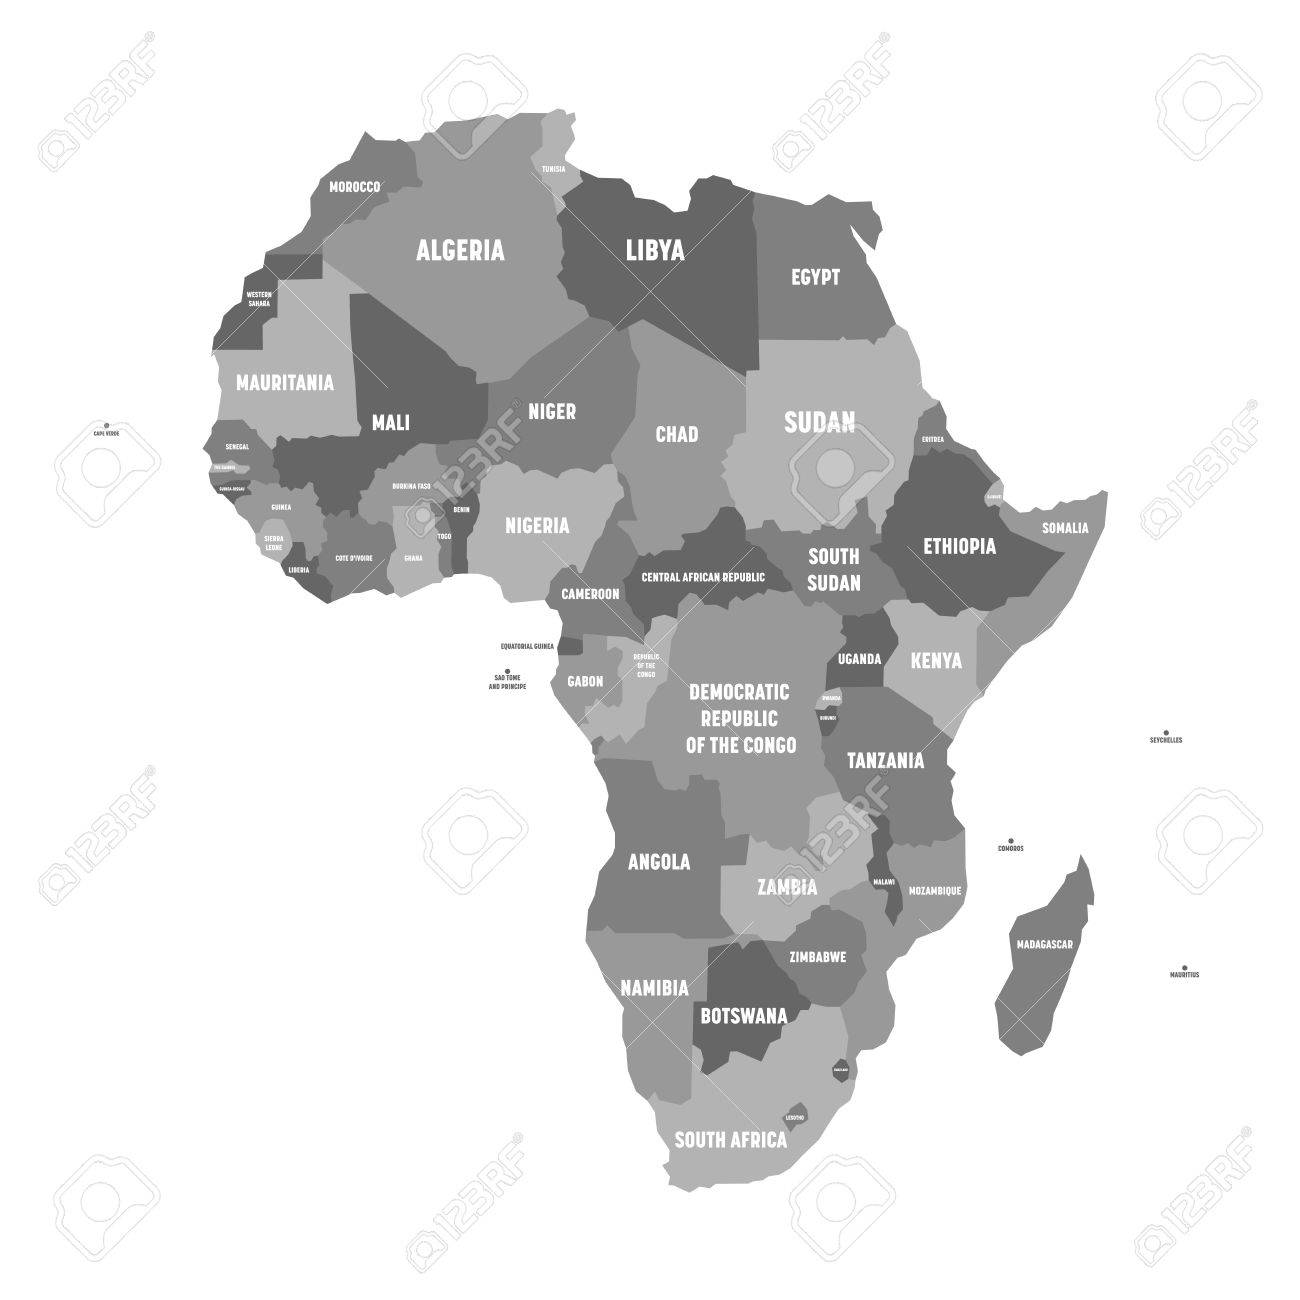 Political Map Of Africa In Four Shades Of Grey With White Country